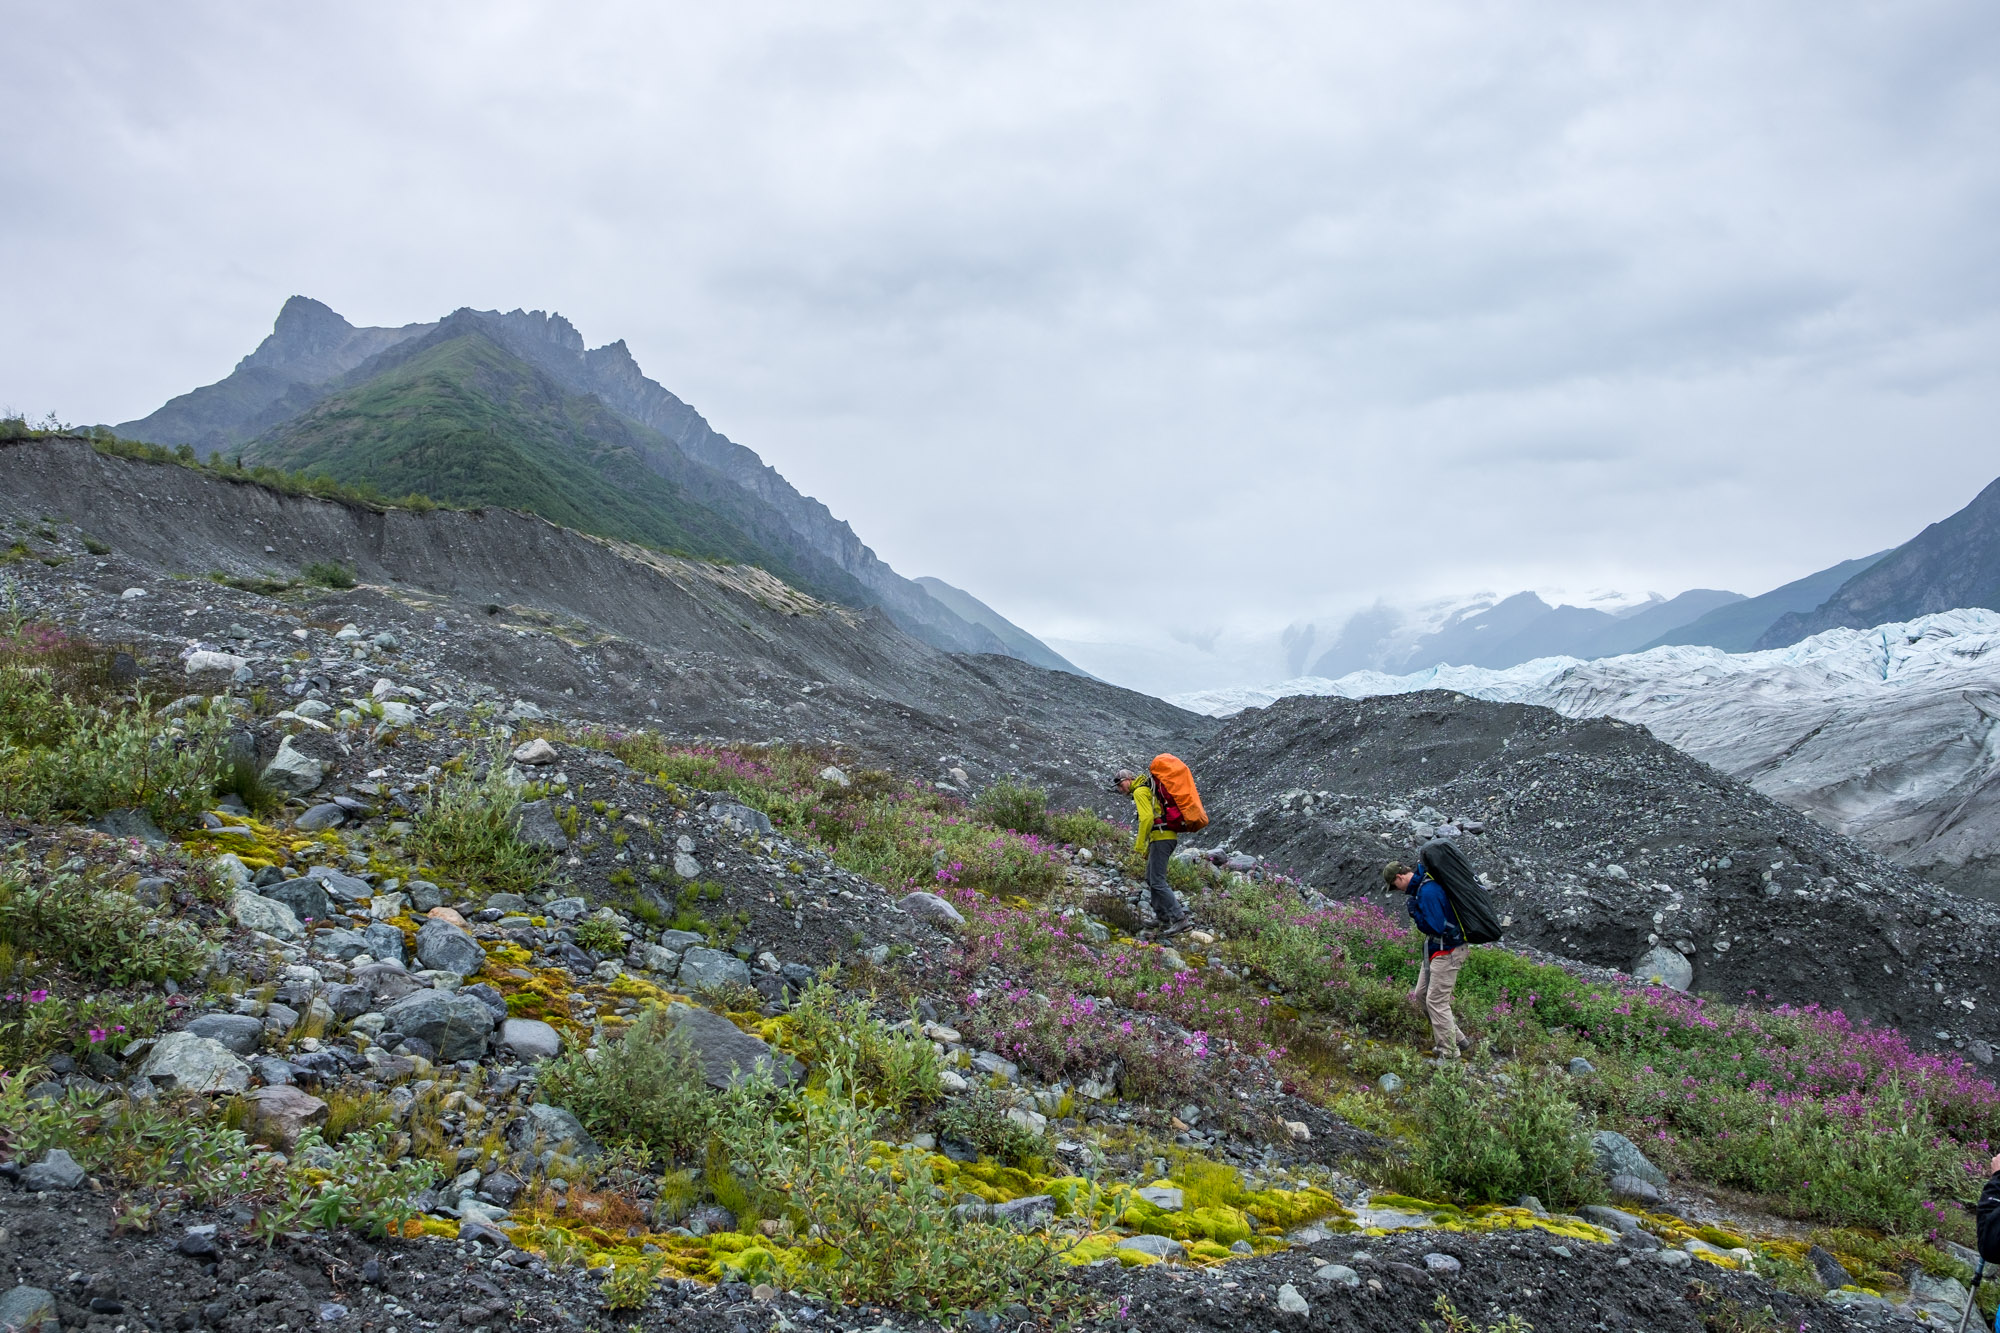 After exiting the glacier, we started walking on moraine, which was not easy to hike on!